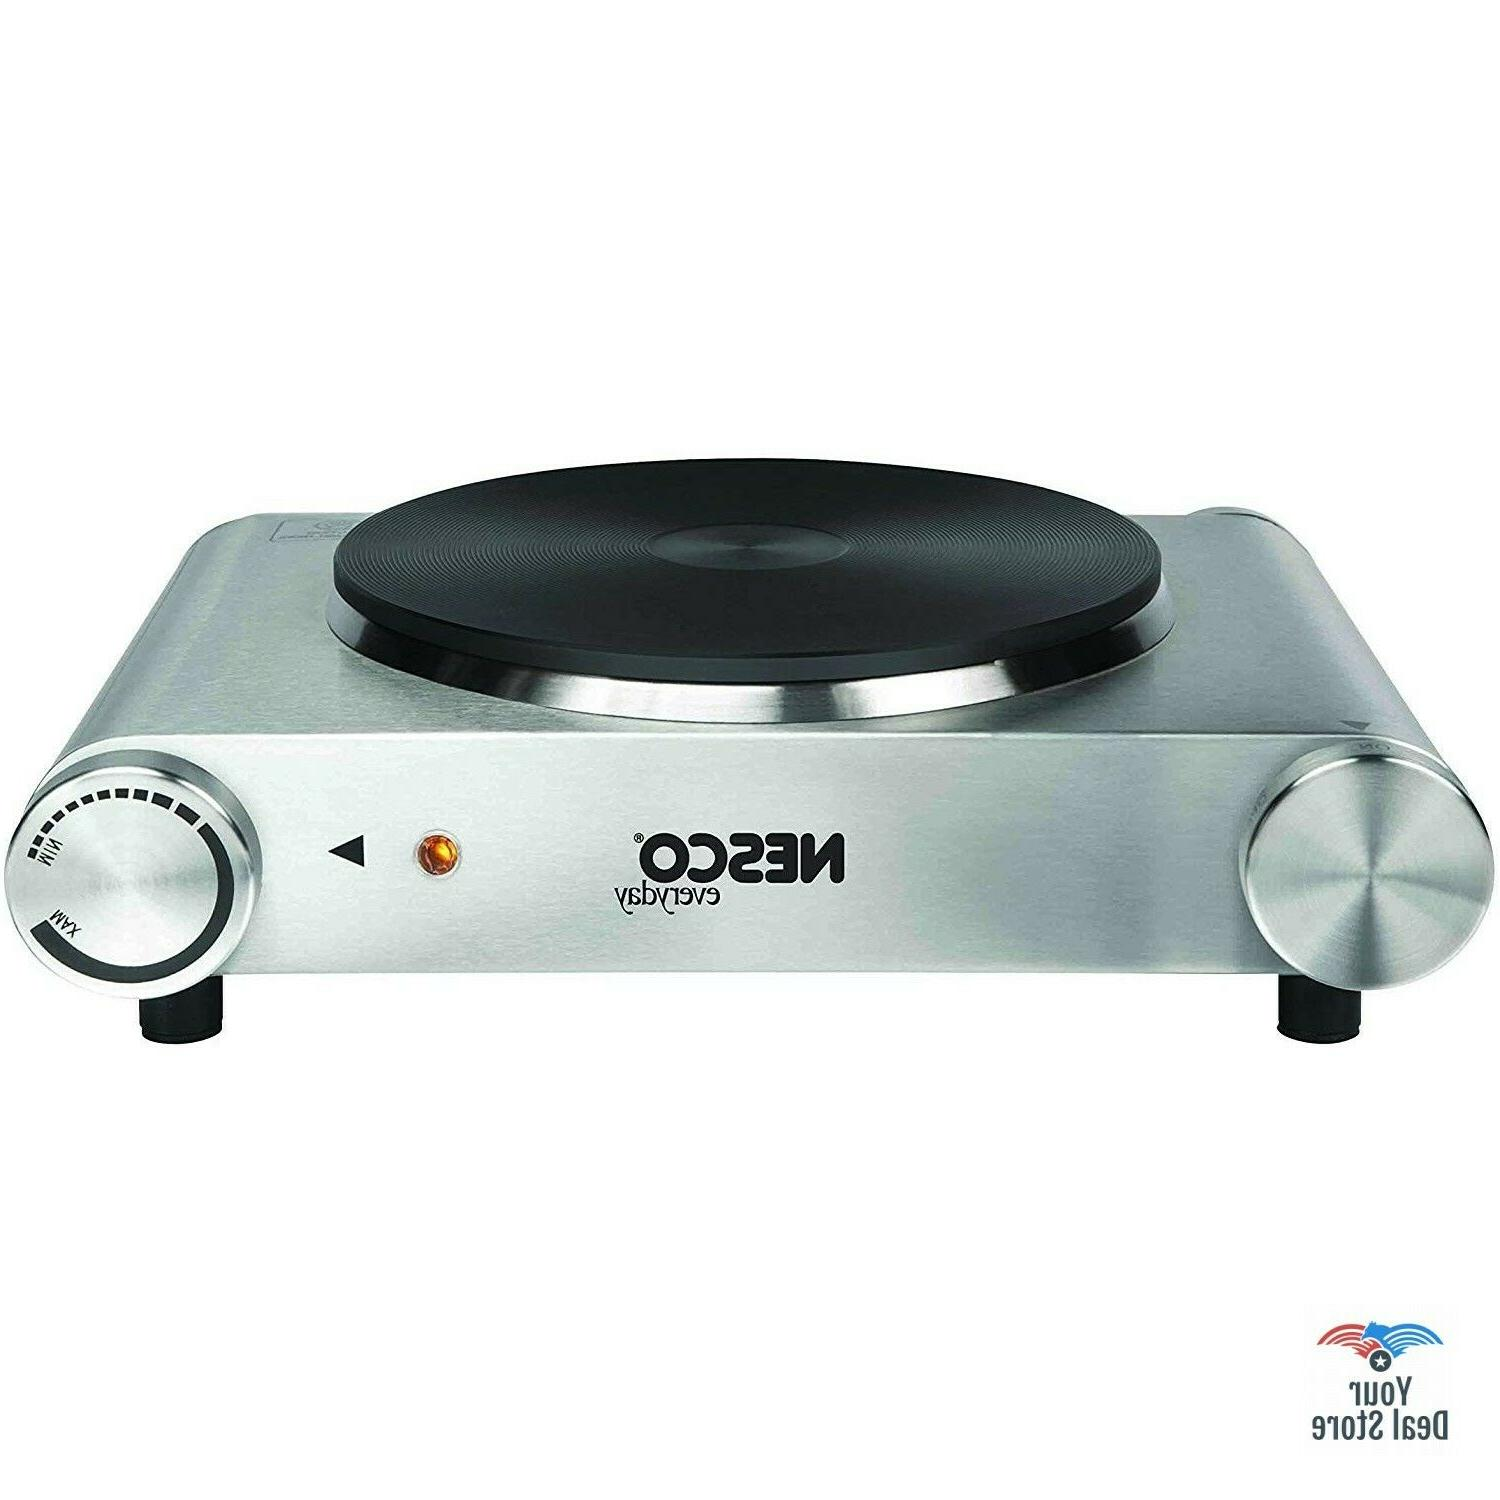 Single Burner Portable Induction Cooktop Stove